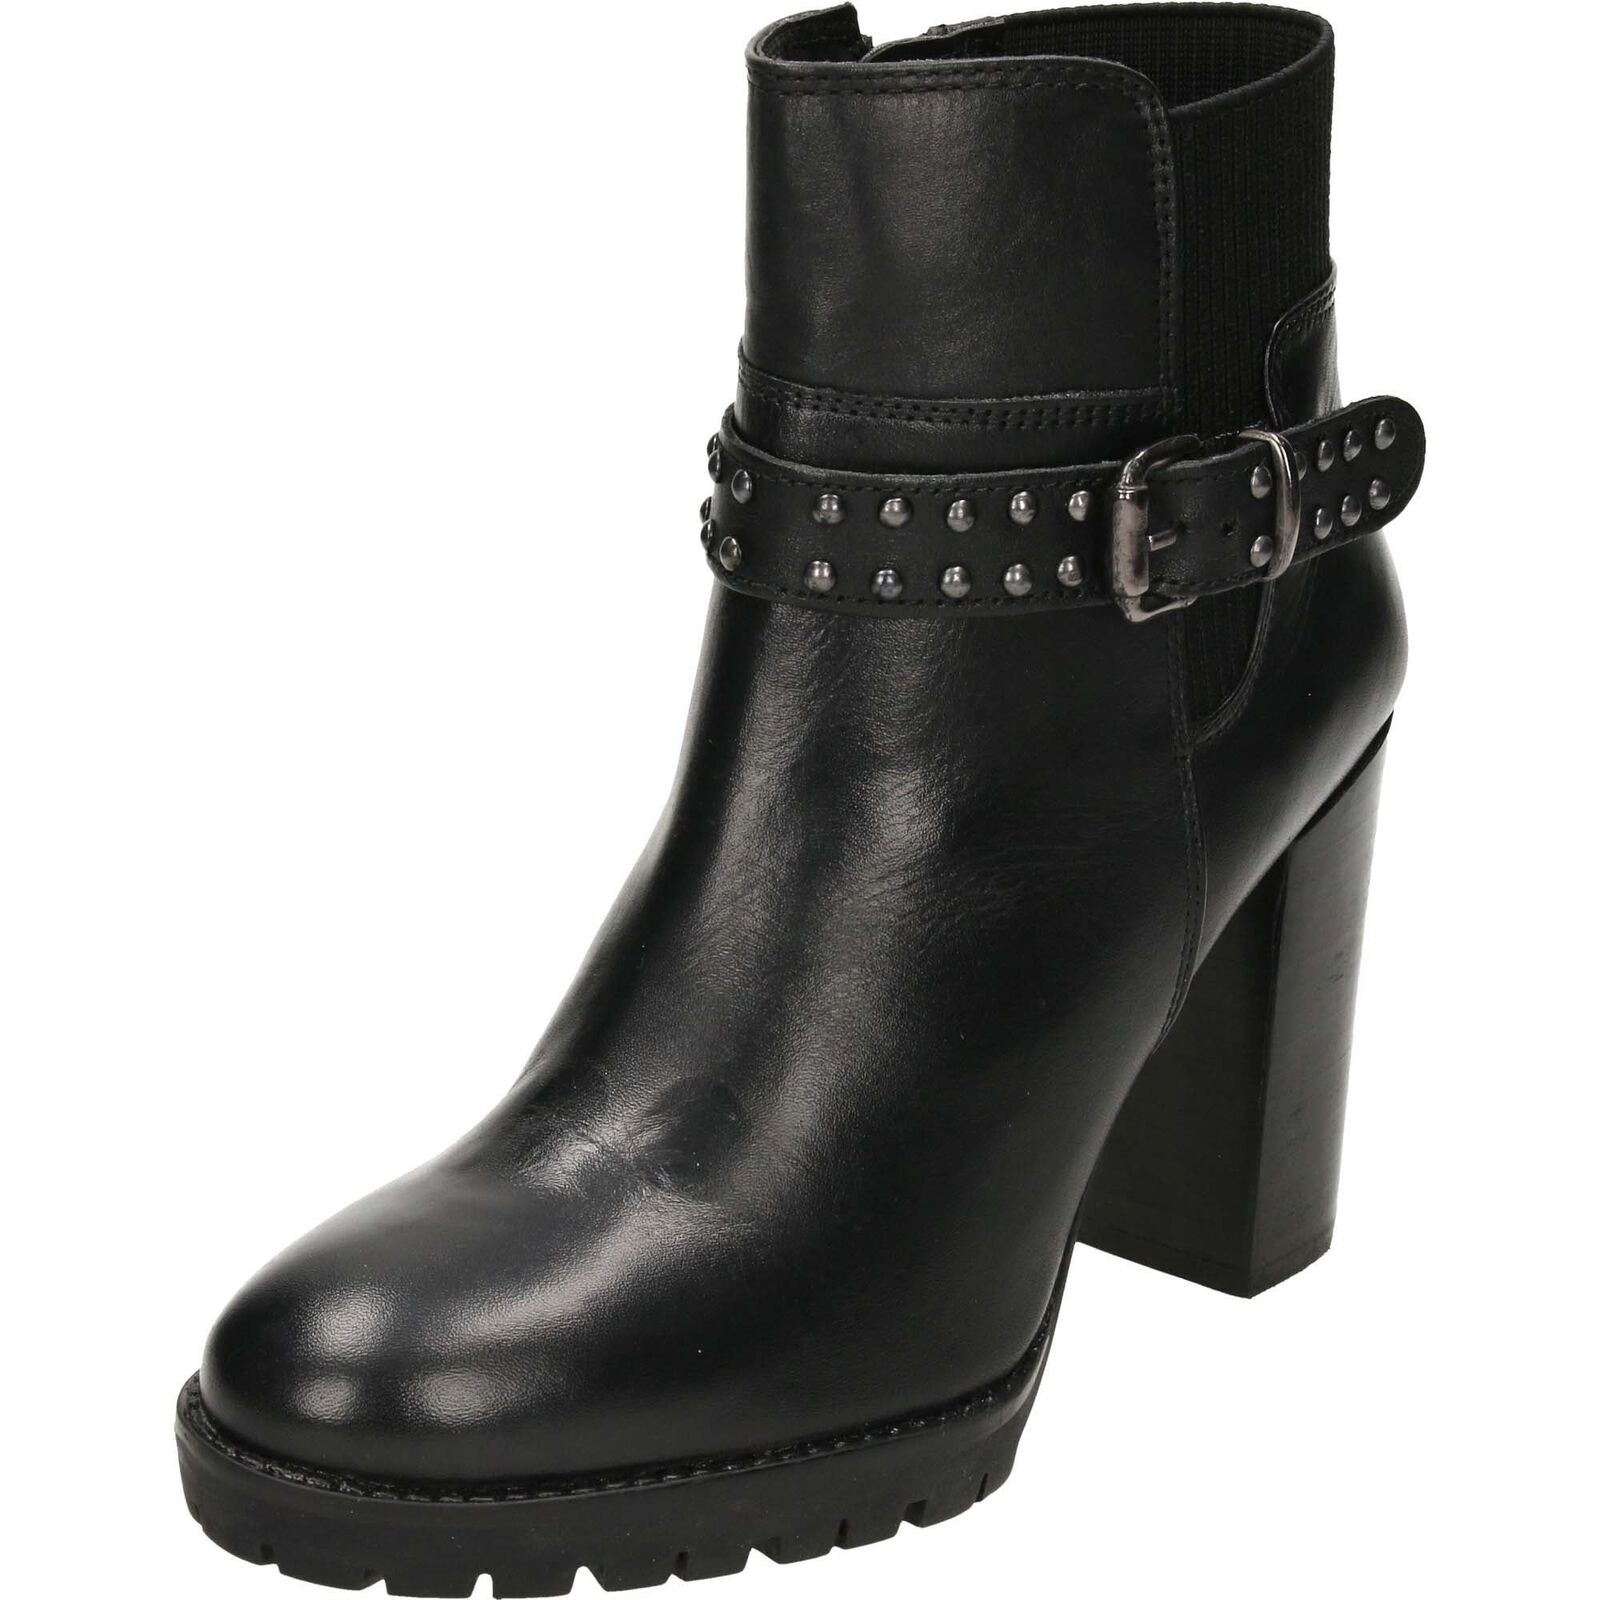 Ravel Whatley Leather Heeled Ankle Boots Black Chunky Studded Biker Gothic